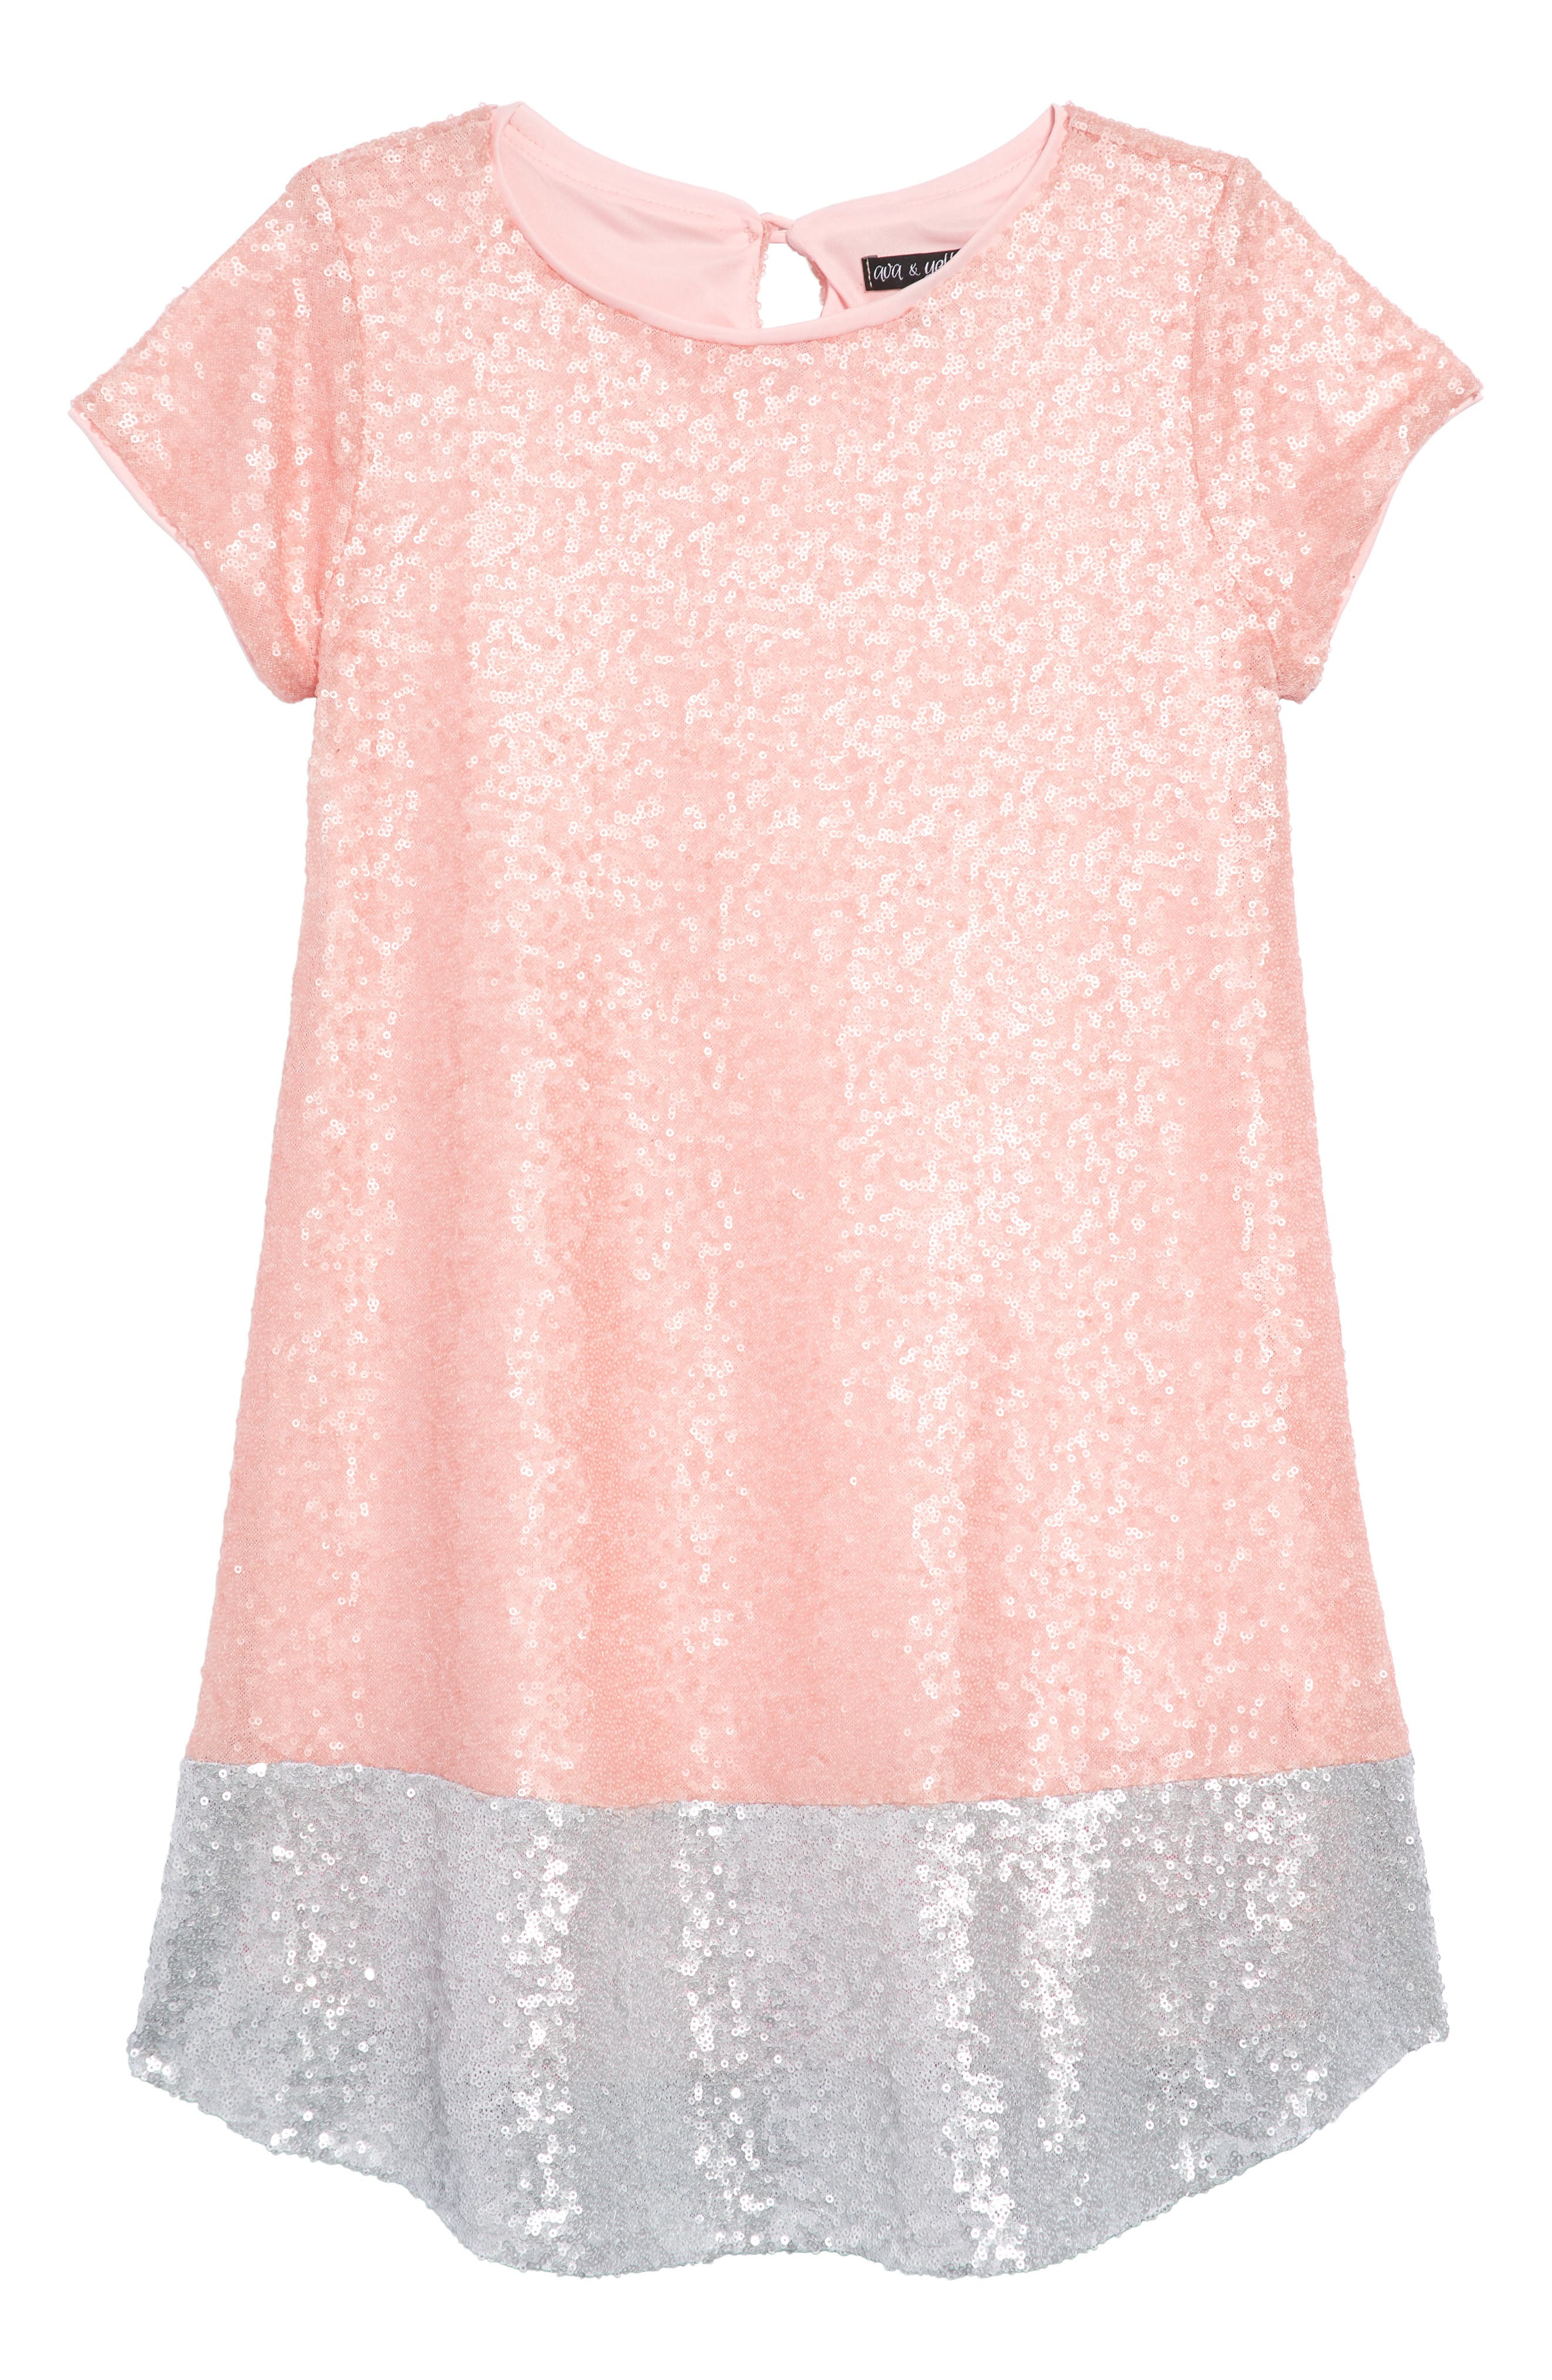 Sequin Shift Dress,                         Main,                         color, Pink/ Silver